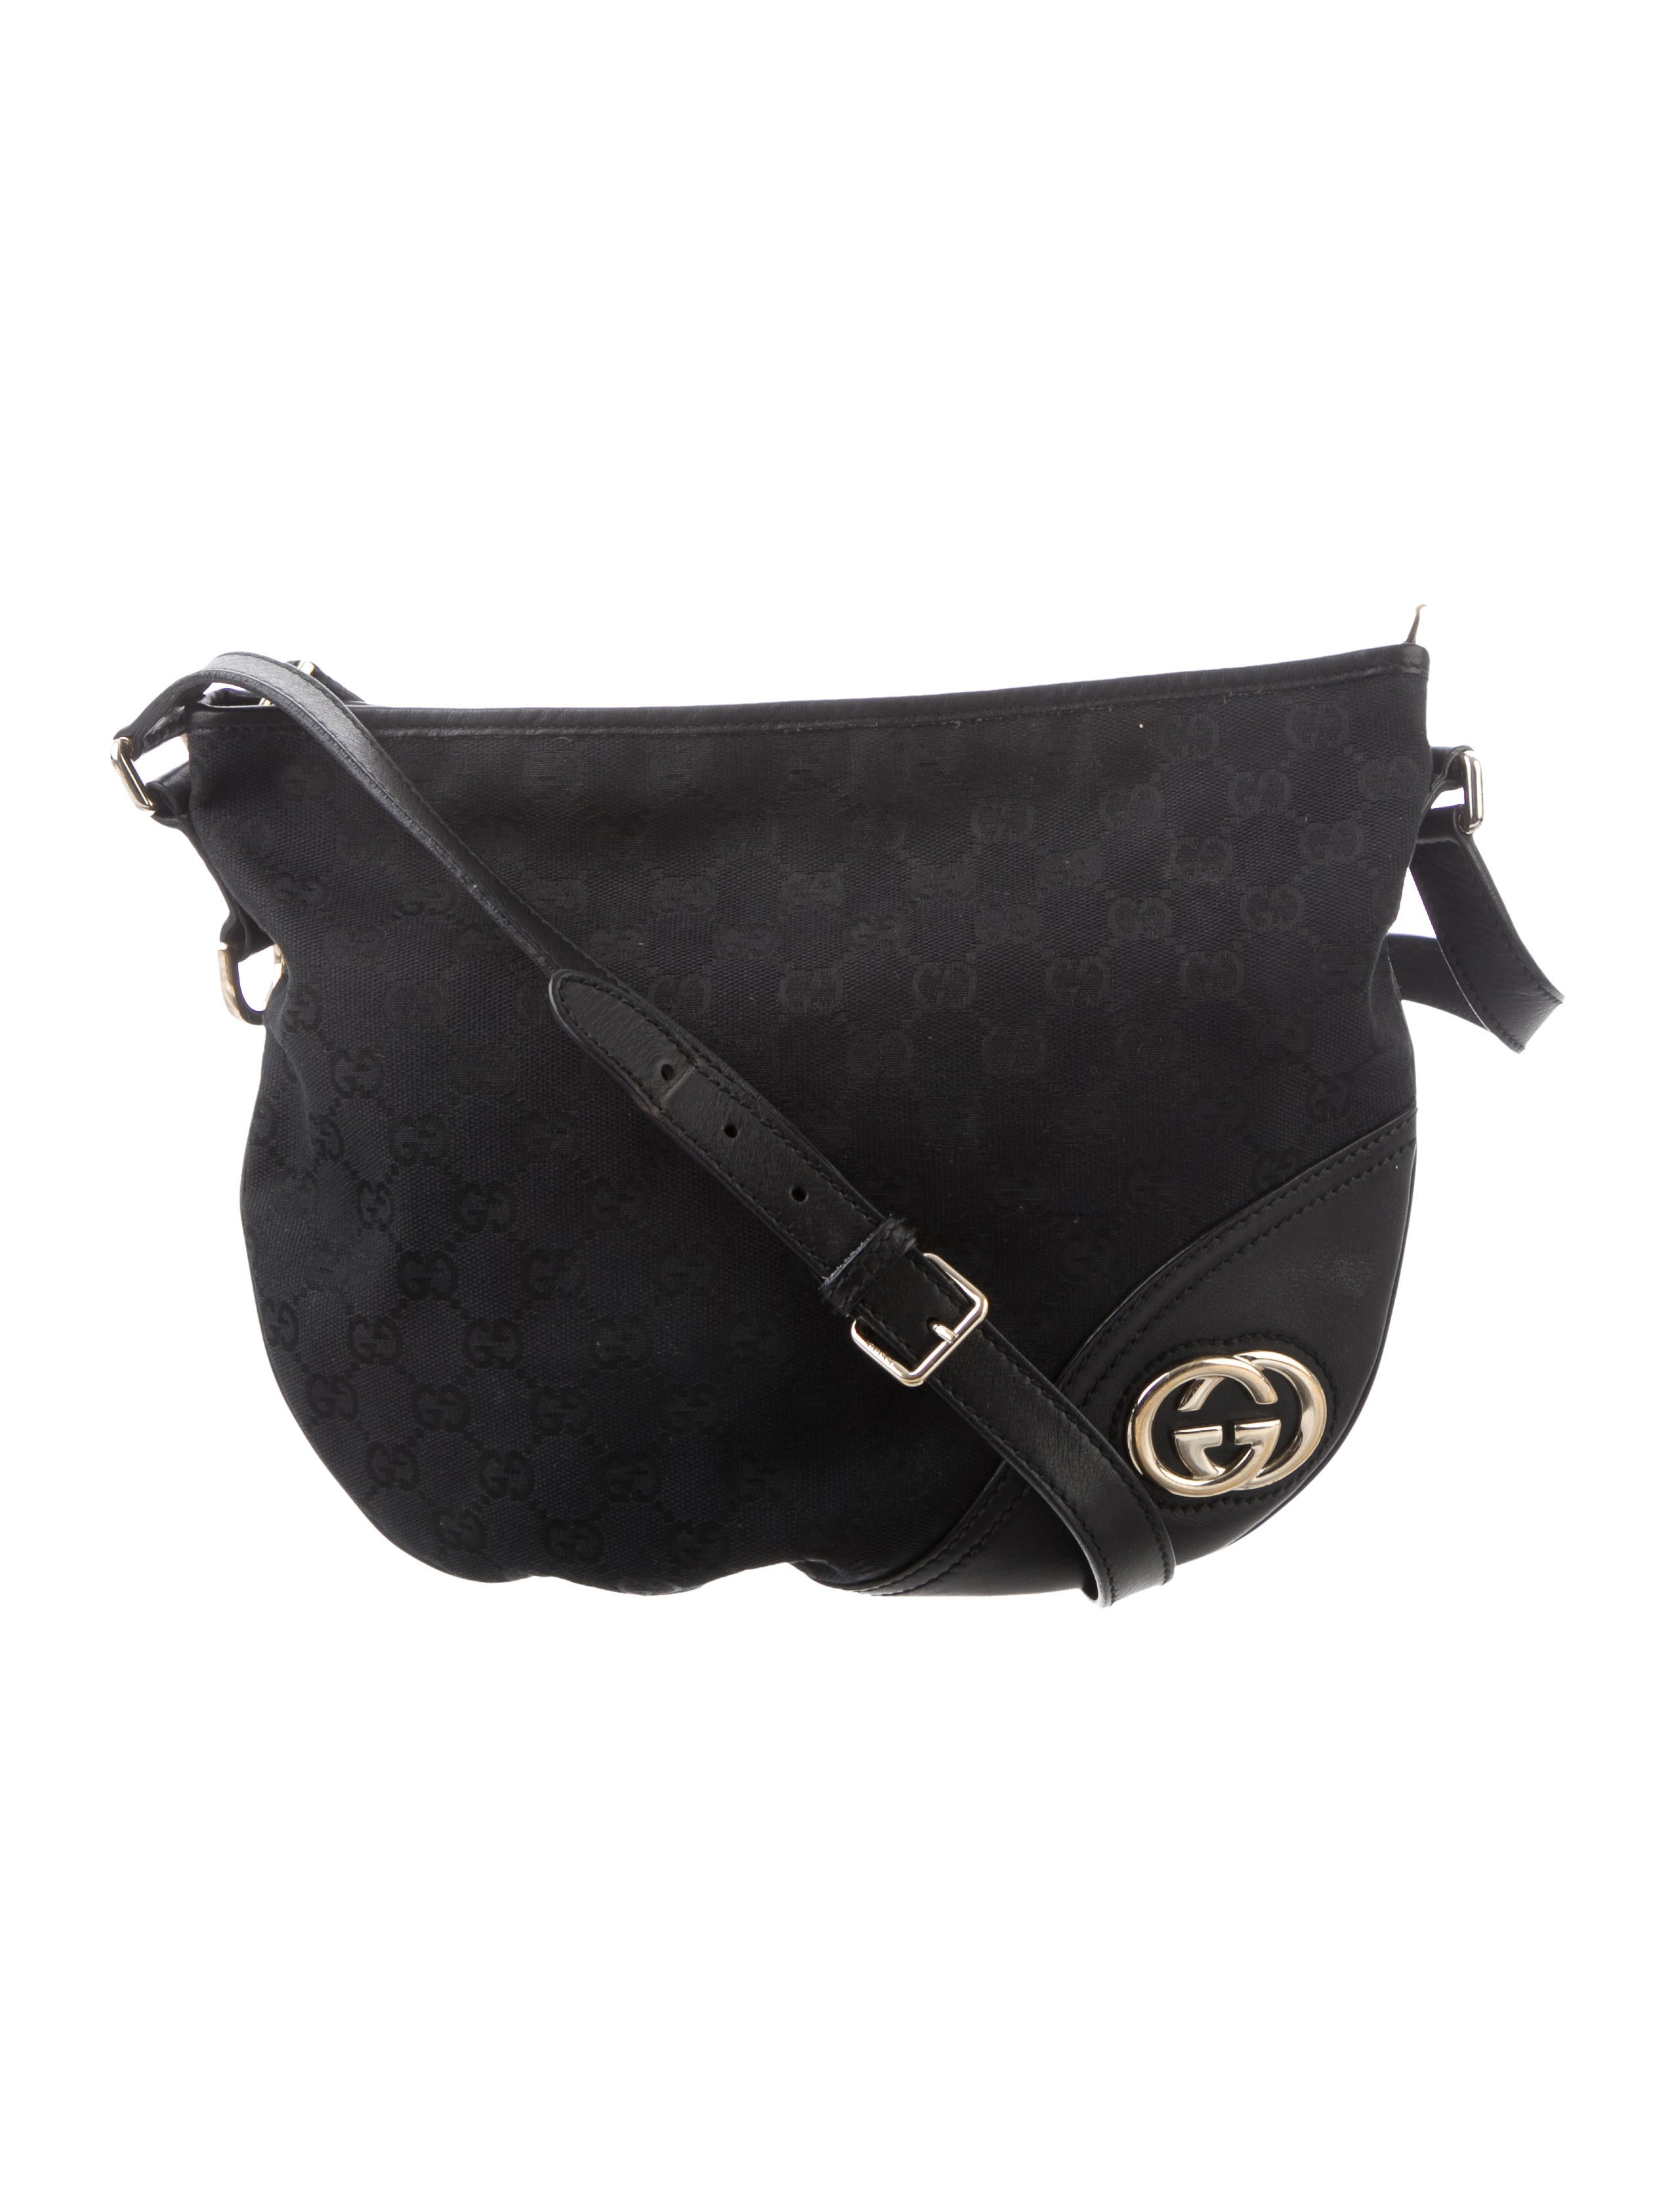 c981d6bc86d45 Gucci GG Canvas Britt Crossbody Bag - Handbags - GUC331685 | The ...